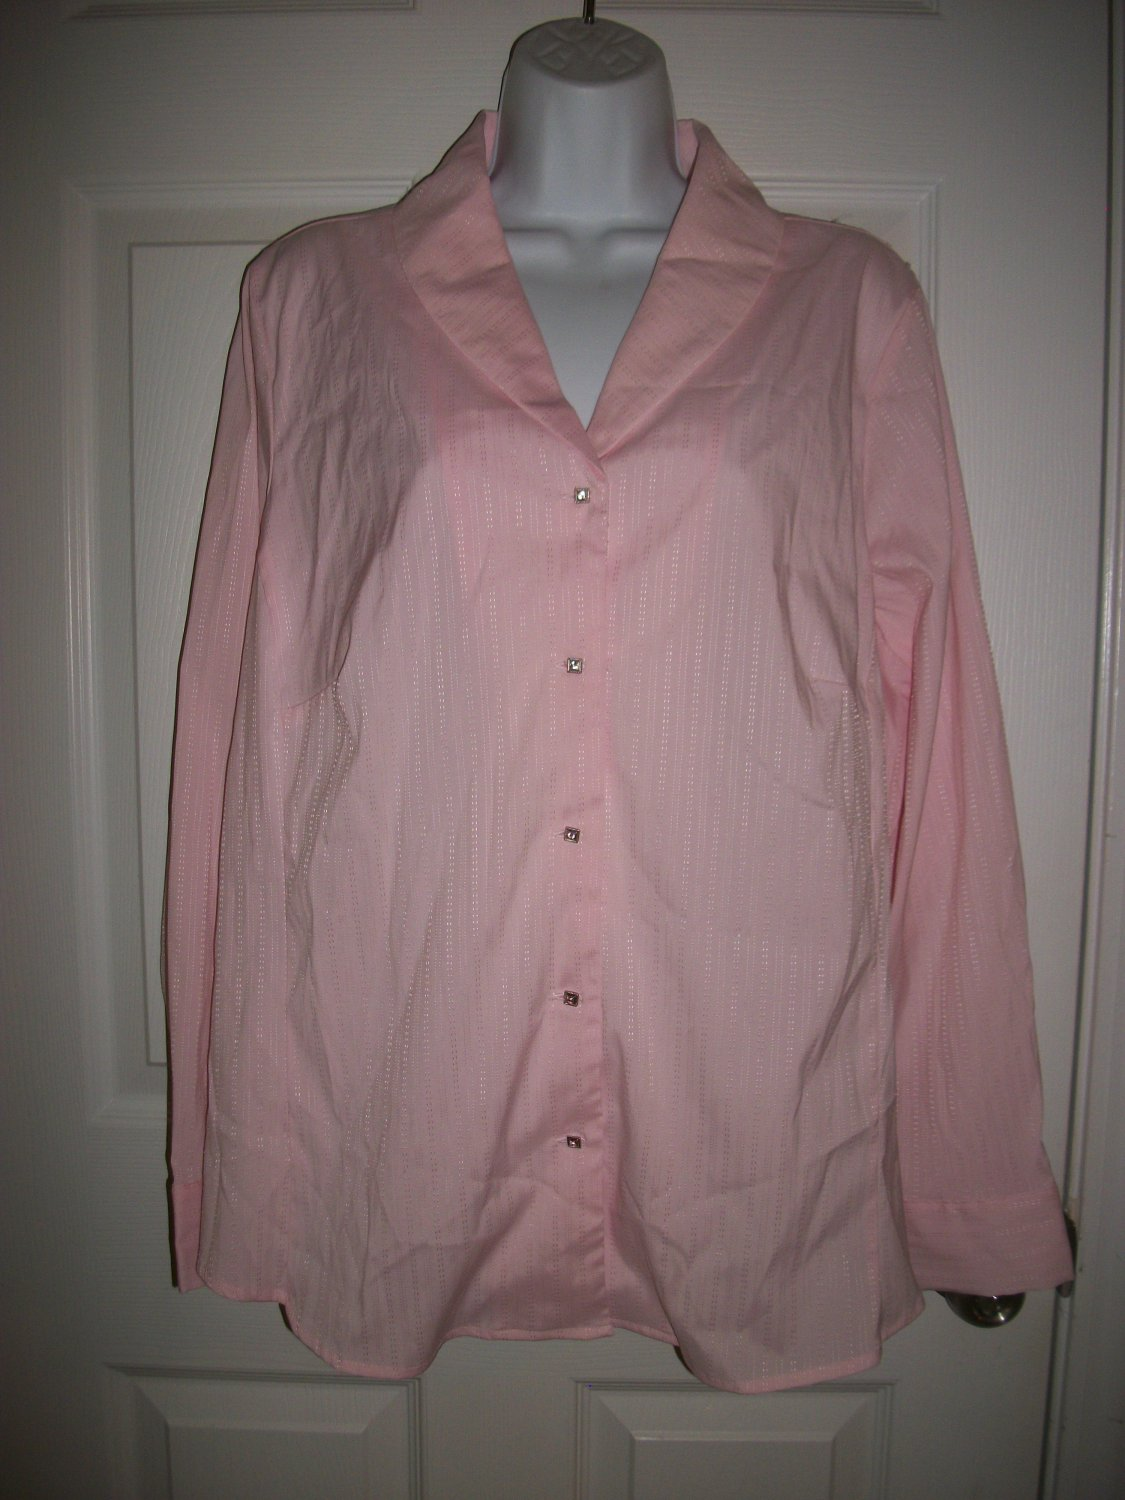 Avenue Women's Pink Classic Fit Long Sleeed Shirt Size 18 /20